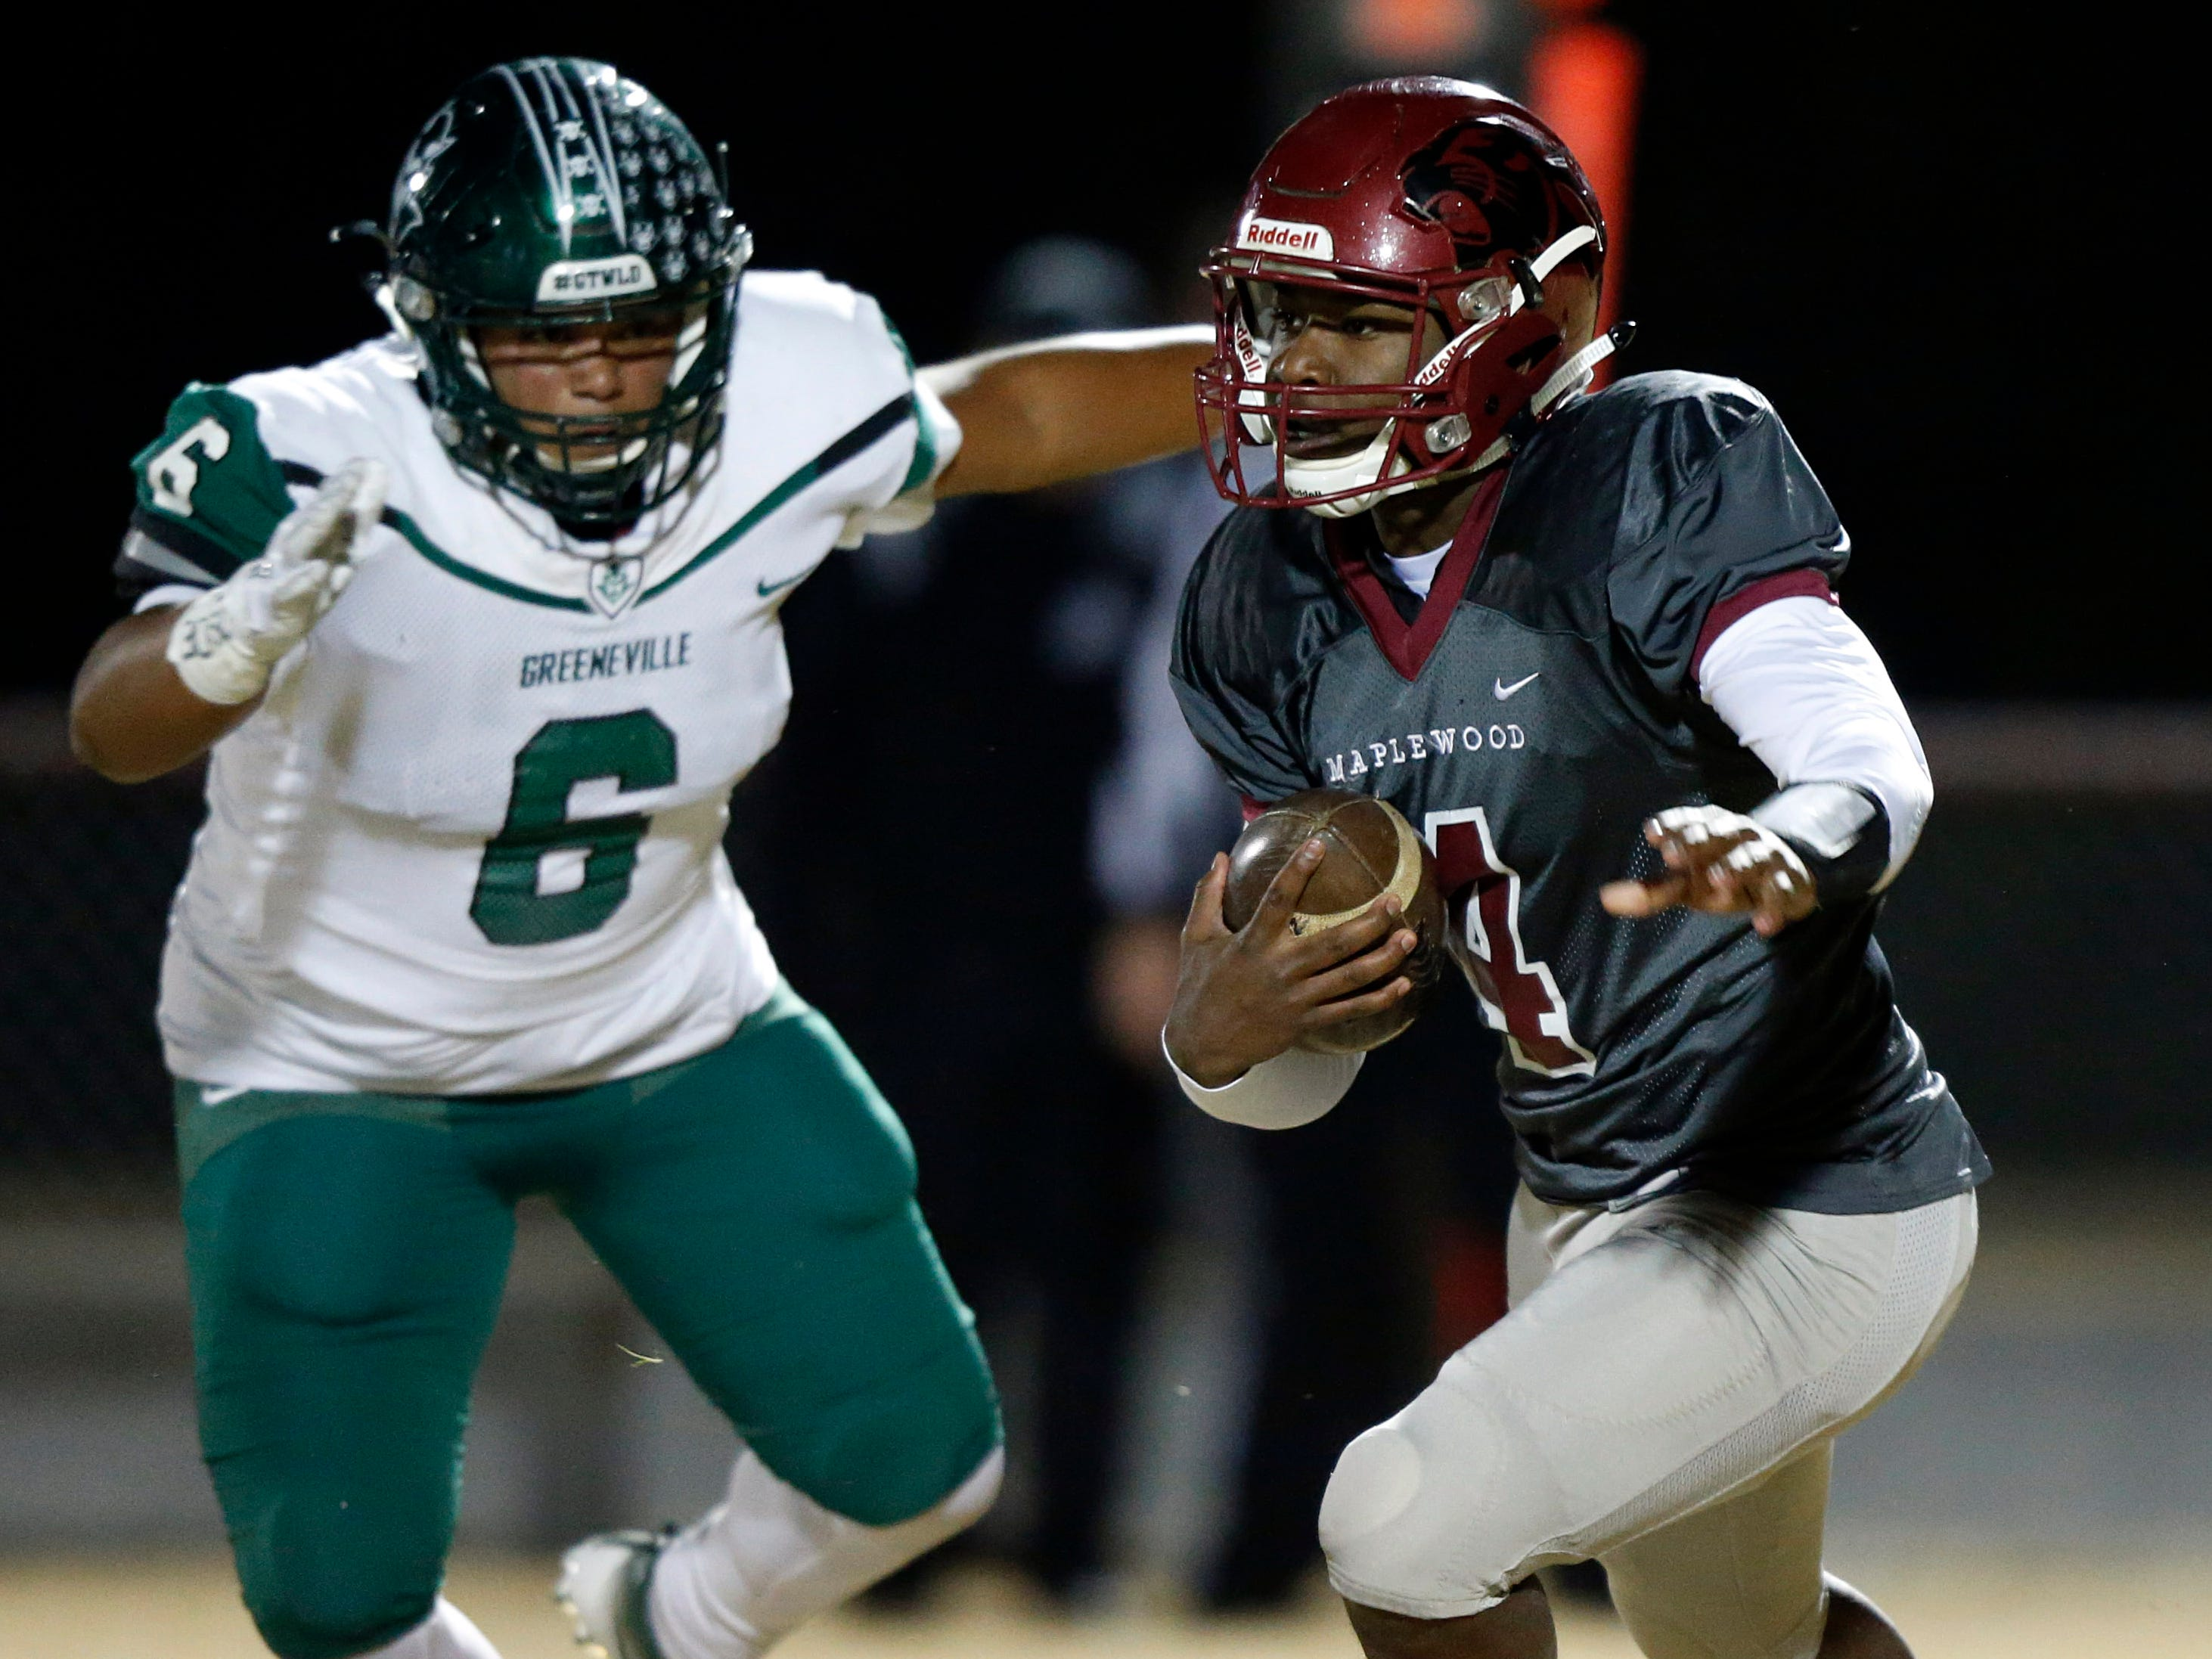 Maplewood's Bobo Hodges (4) runs away from Greeneville's Jacques Gillespie (6) during their game Friday, Nov. 23, 2018, in Nashville, TN.